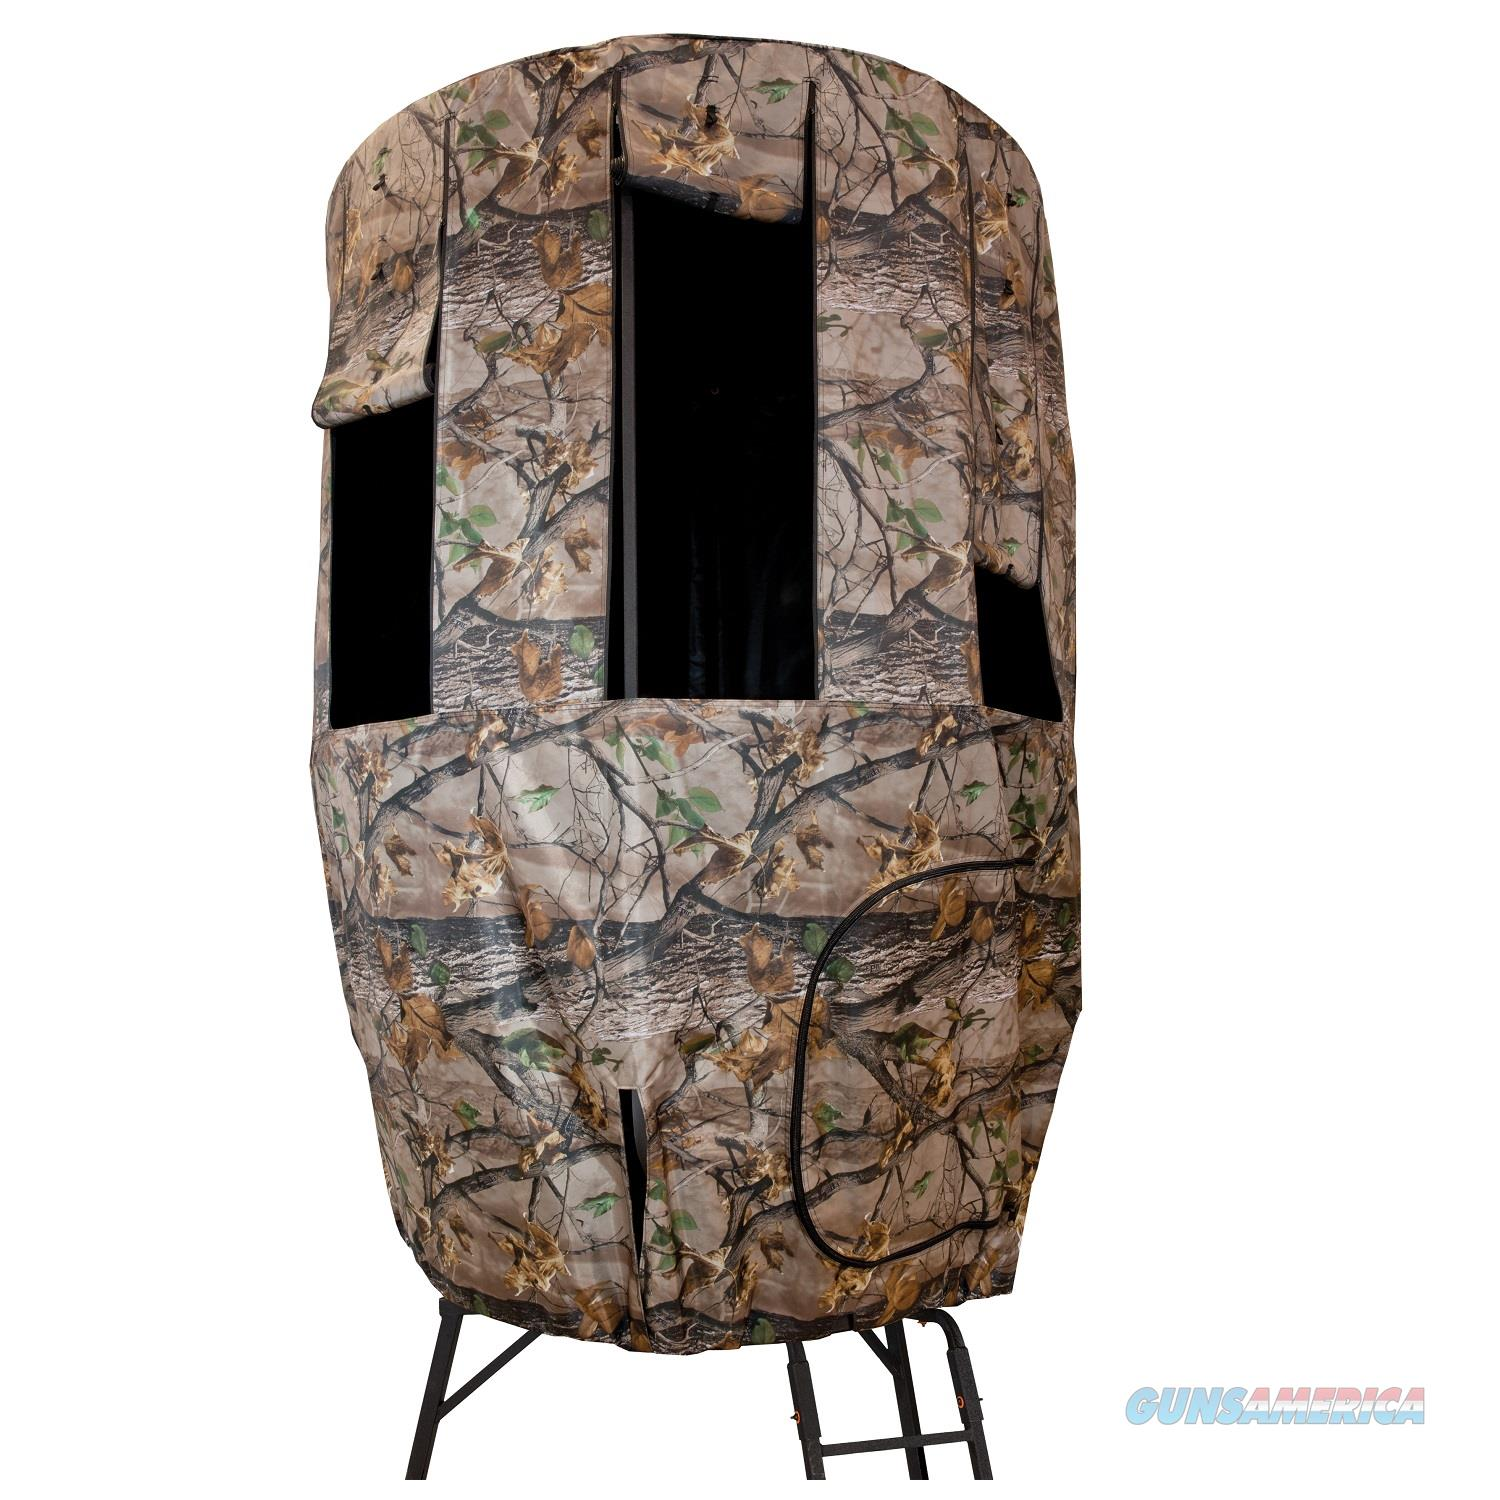 Muddy Roof Kit For Liberty MTA3000-RK  Non-Guns > Hunting Clothing and Equipment > Tree Stands